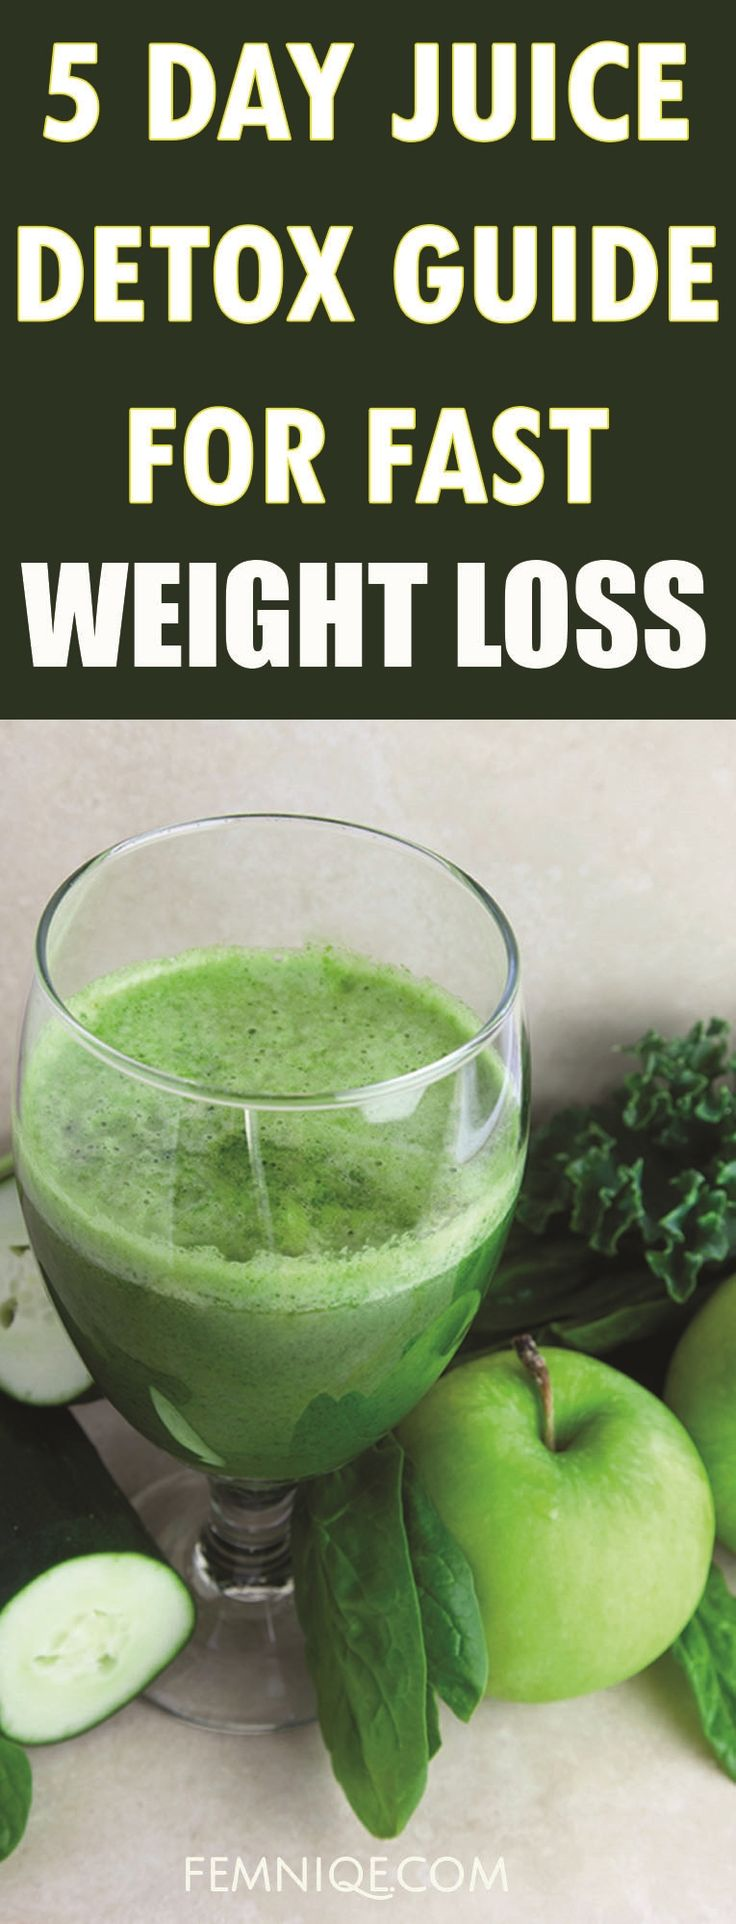 5 Day Detox Guide - Reset Your Body And Start To Melt Away Stubborn Fat Fast! | detox drinks to lose weight fast | detox drinks to lose weight FAT FLUSH | detox drinks to lose weight 10 Pounds | detox drinks to lose weight flat tummy | detox cleanse for weight loss | detox juice recipes cleanses #weightlossmotivation